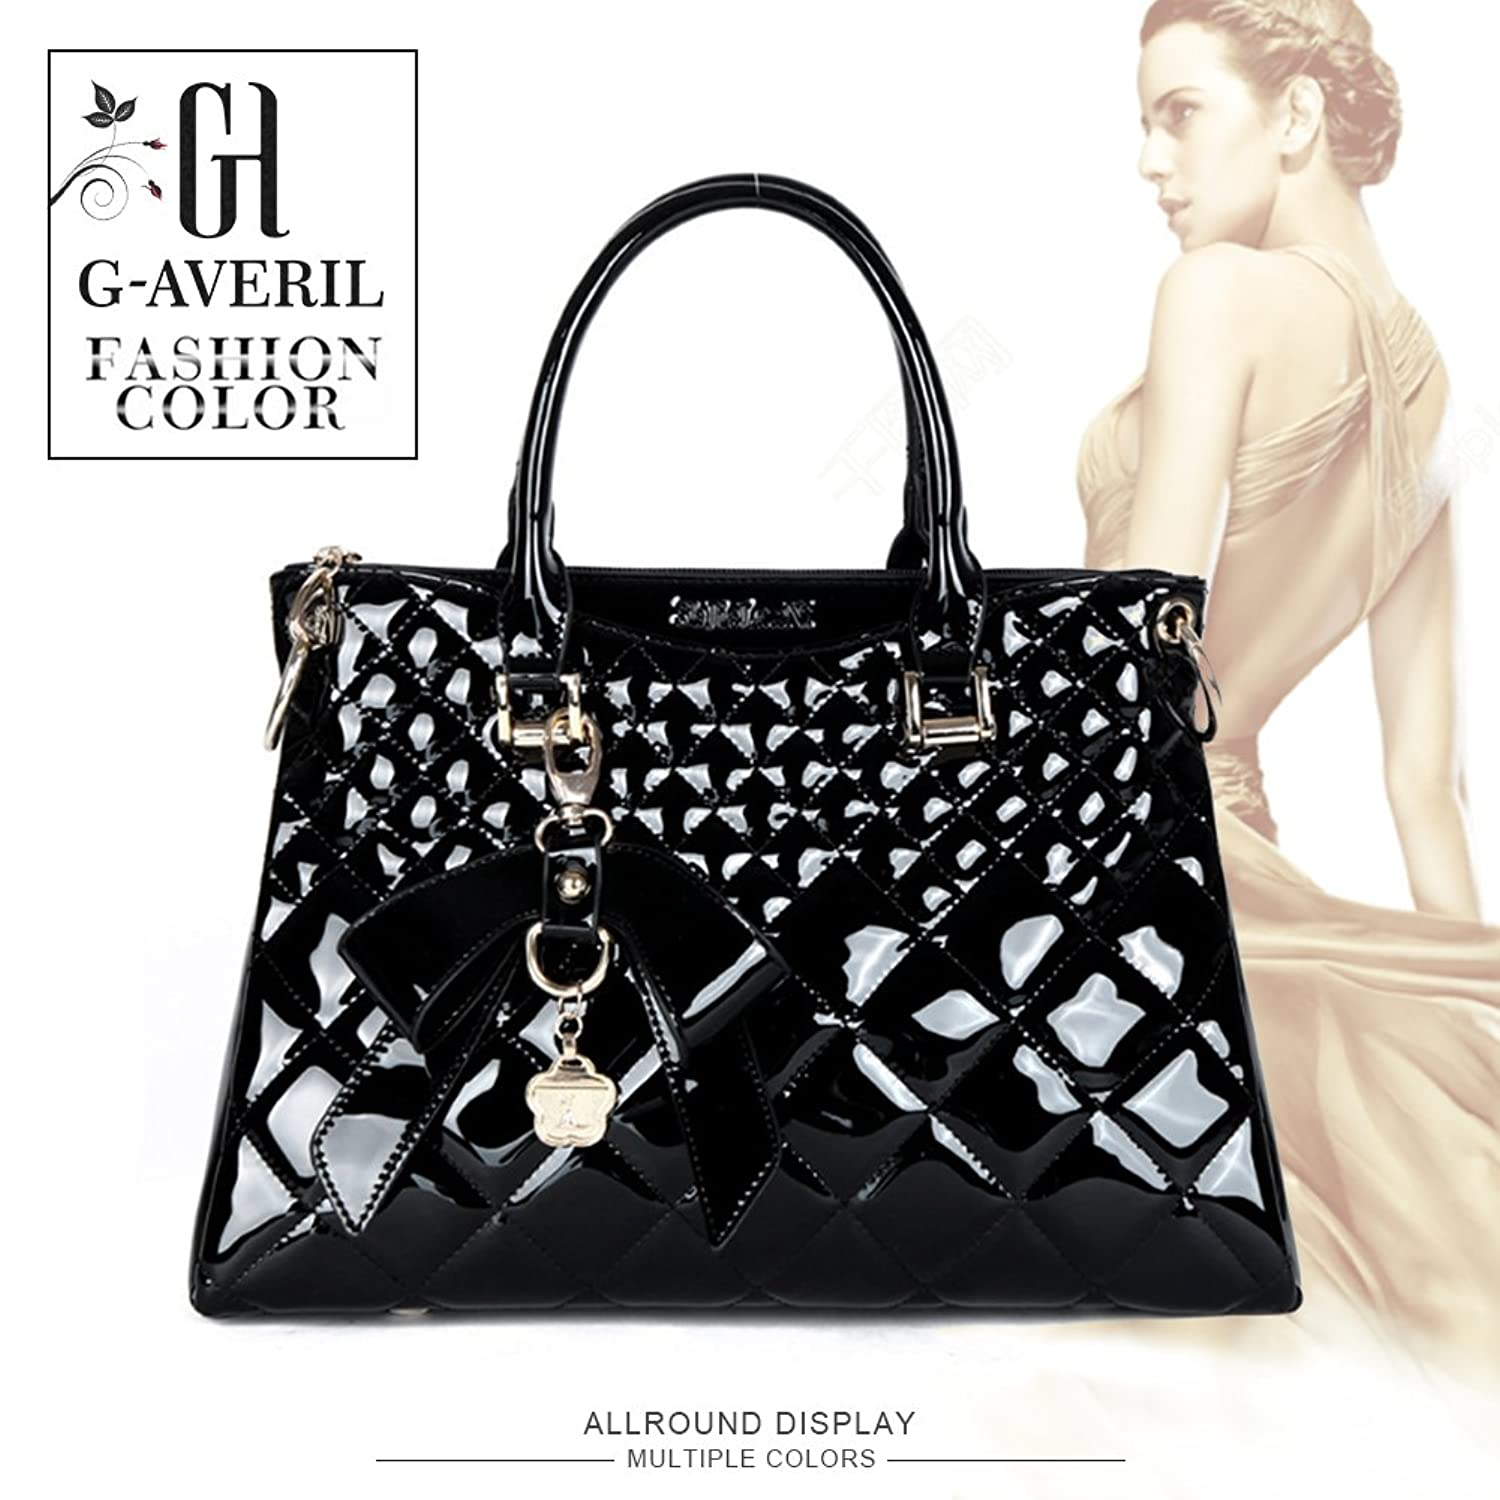 ab69c2bb2828 G-AVERIL Women Patent Leather Handbags Messenger Tote Bags Shoulder Bags  Black  Handbags  Amazon.com